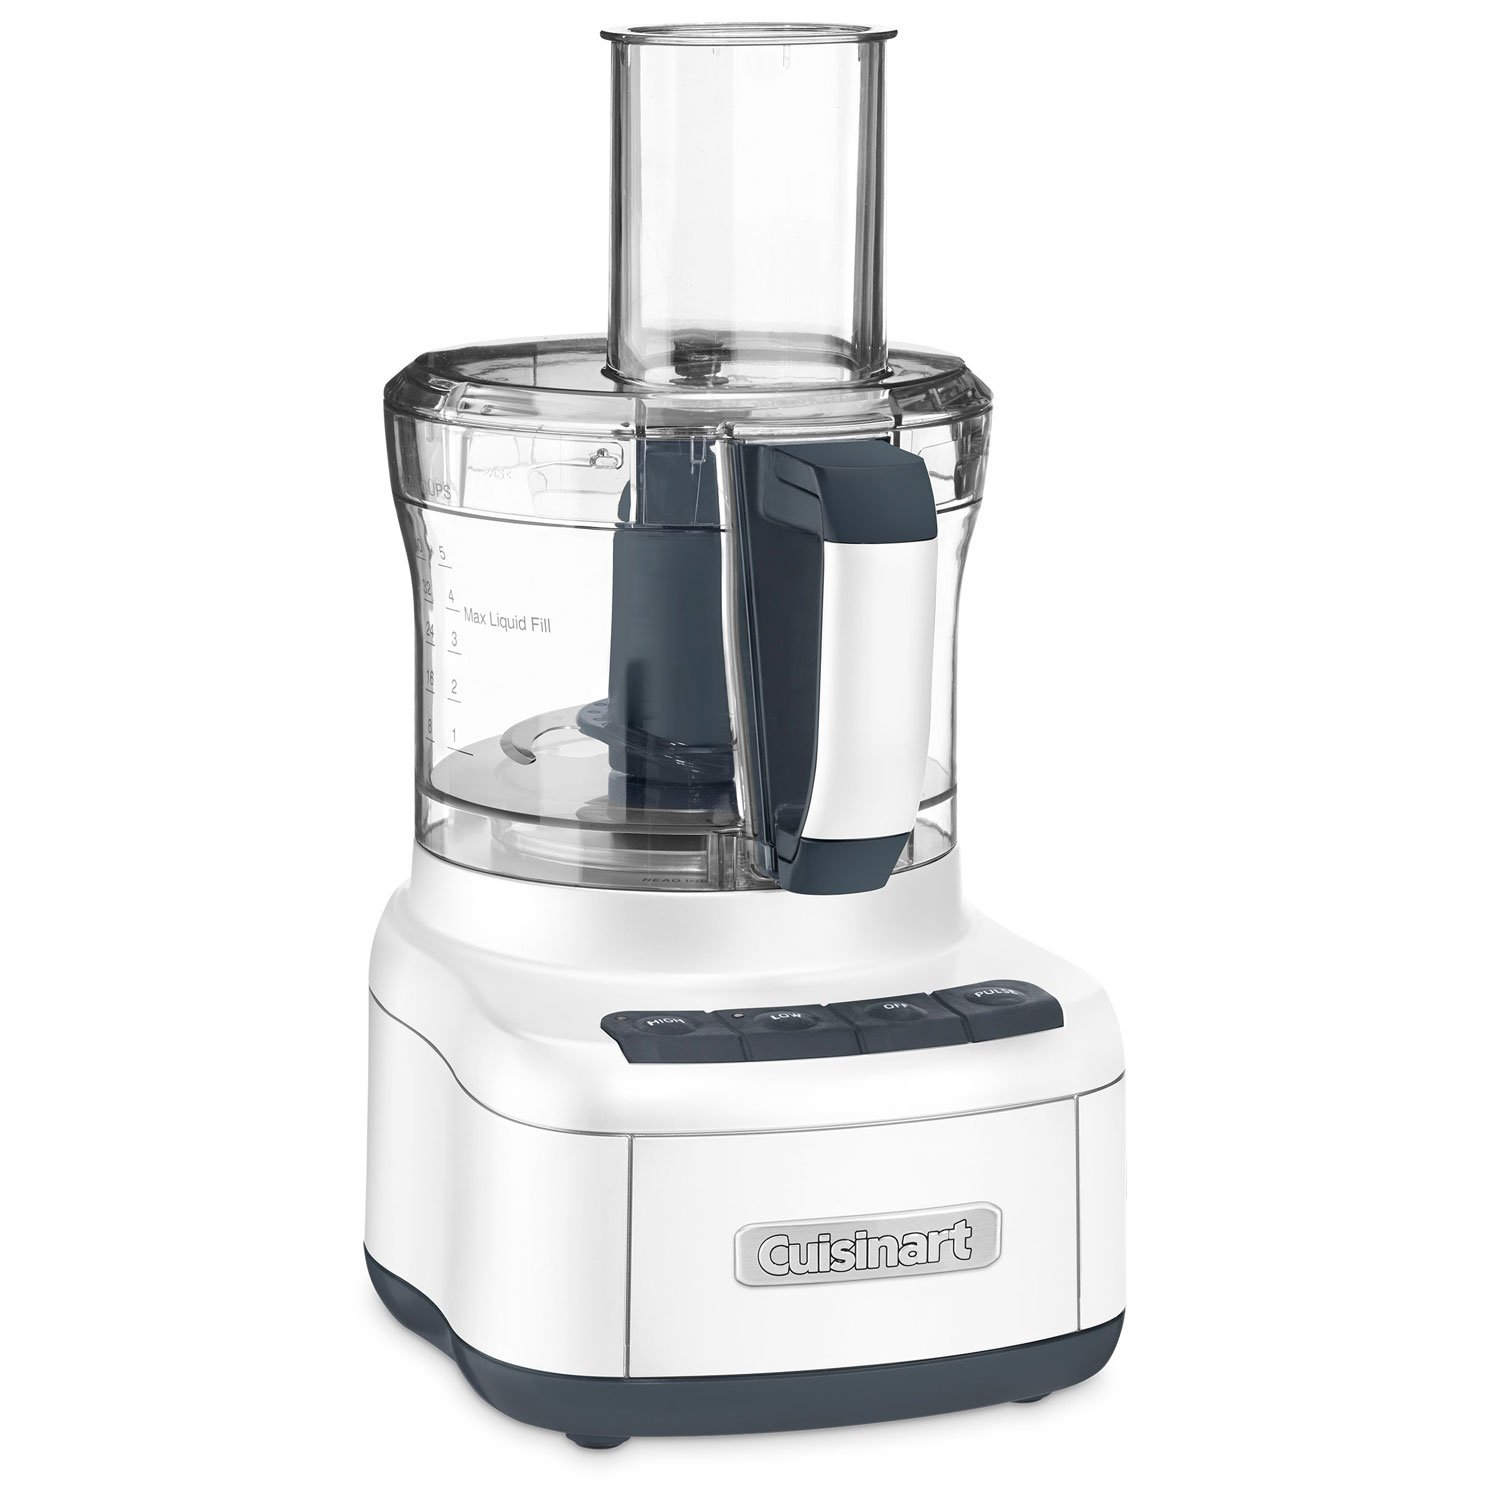 Cuisinart FP-8FR - 8 Cup Food Processor, White - (Certified Refurbished)